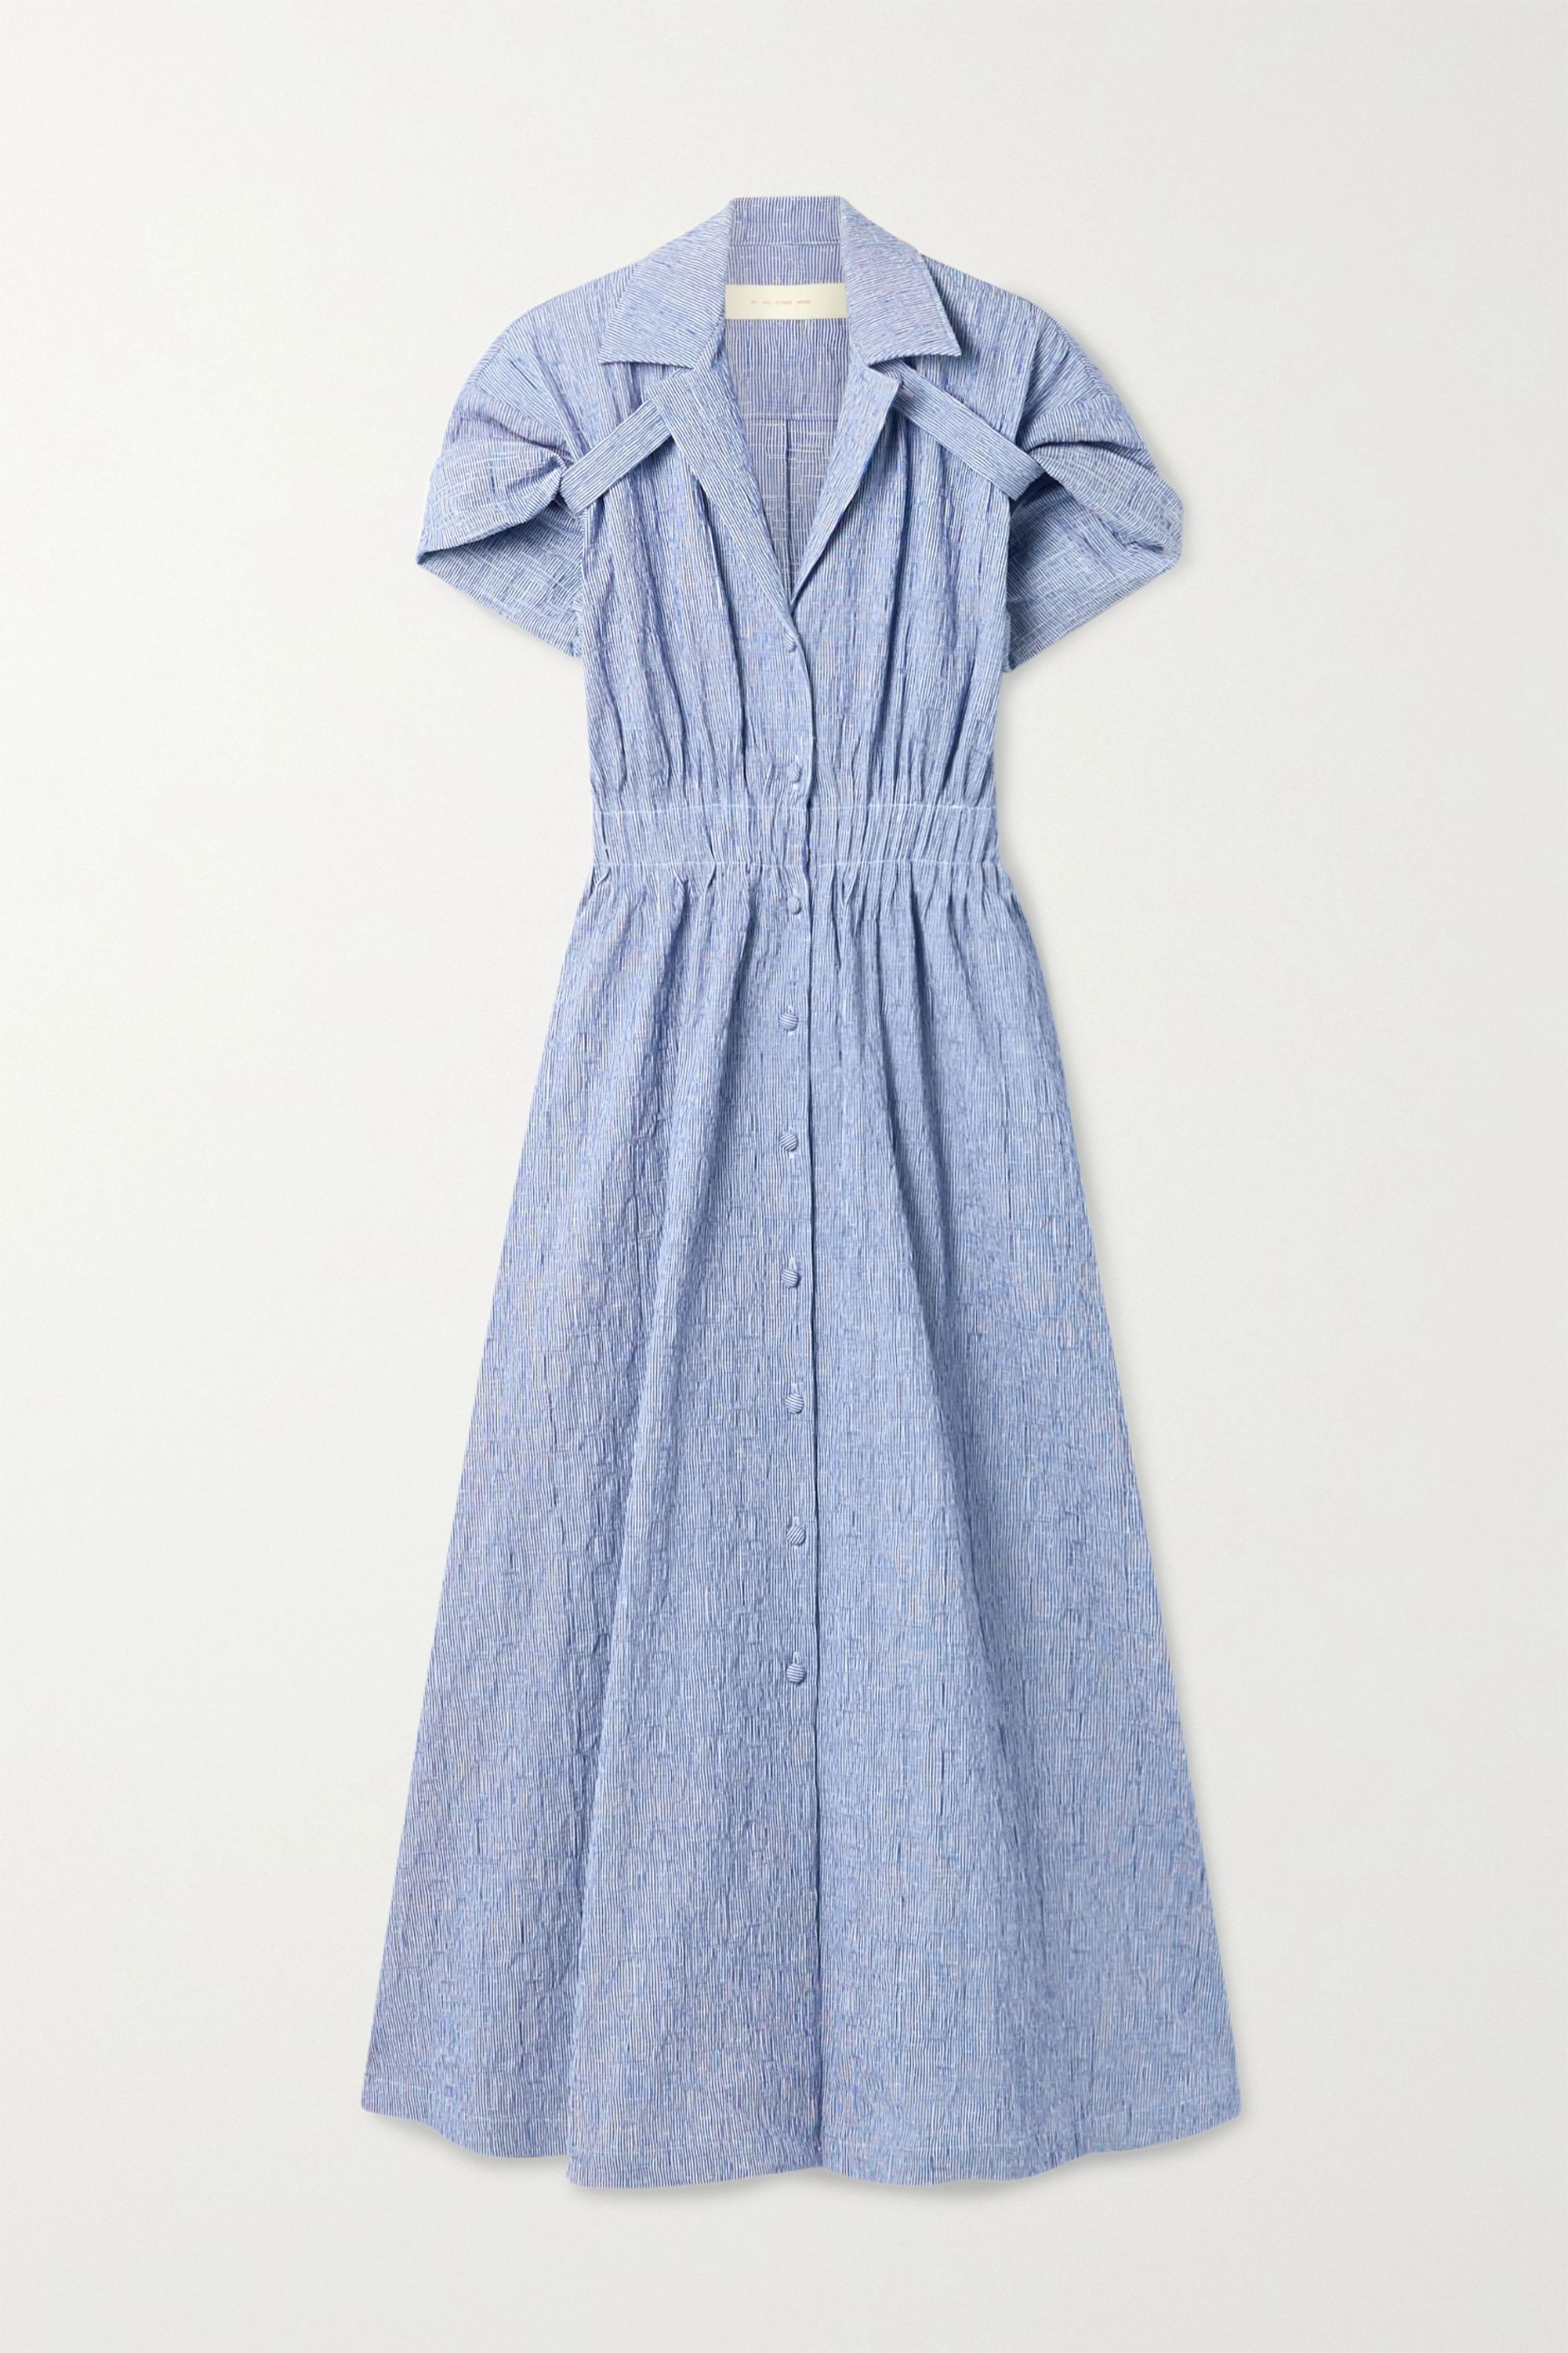 Rosie Assoulin By Any Other Name striped textured stretch-cotton shirt dress